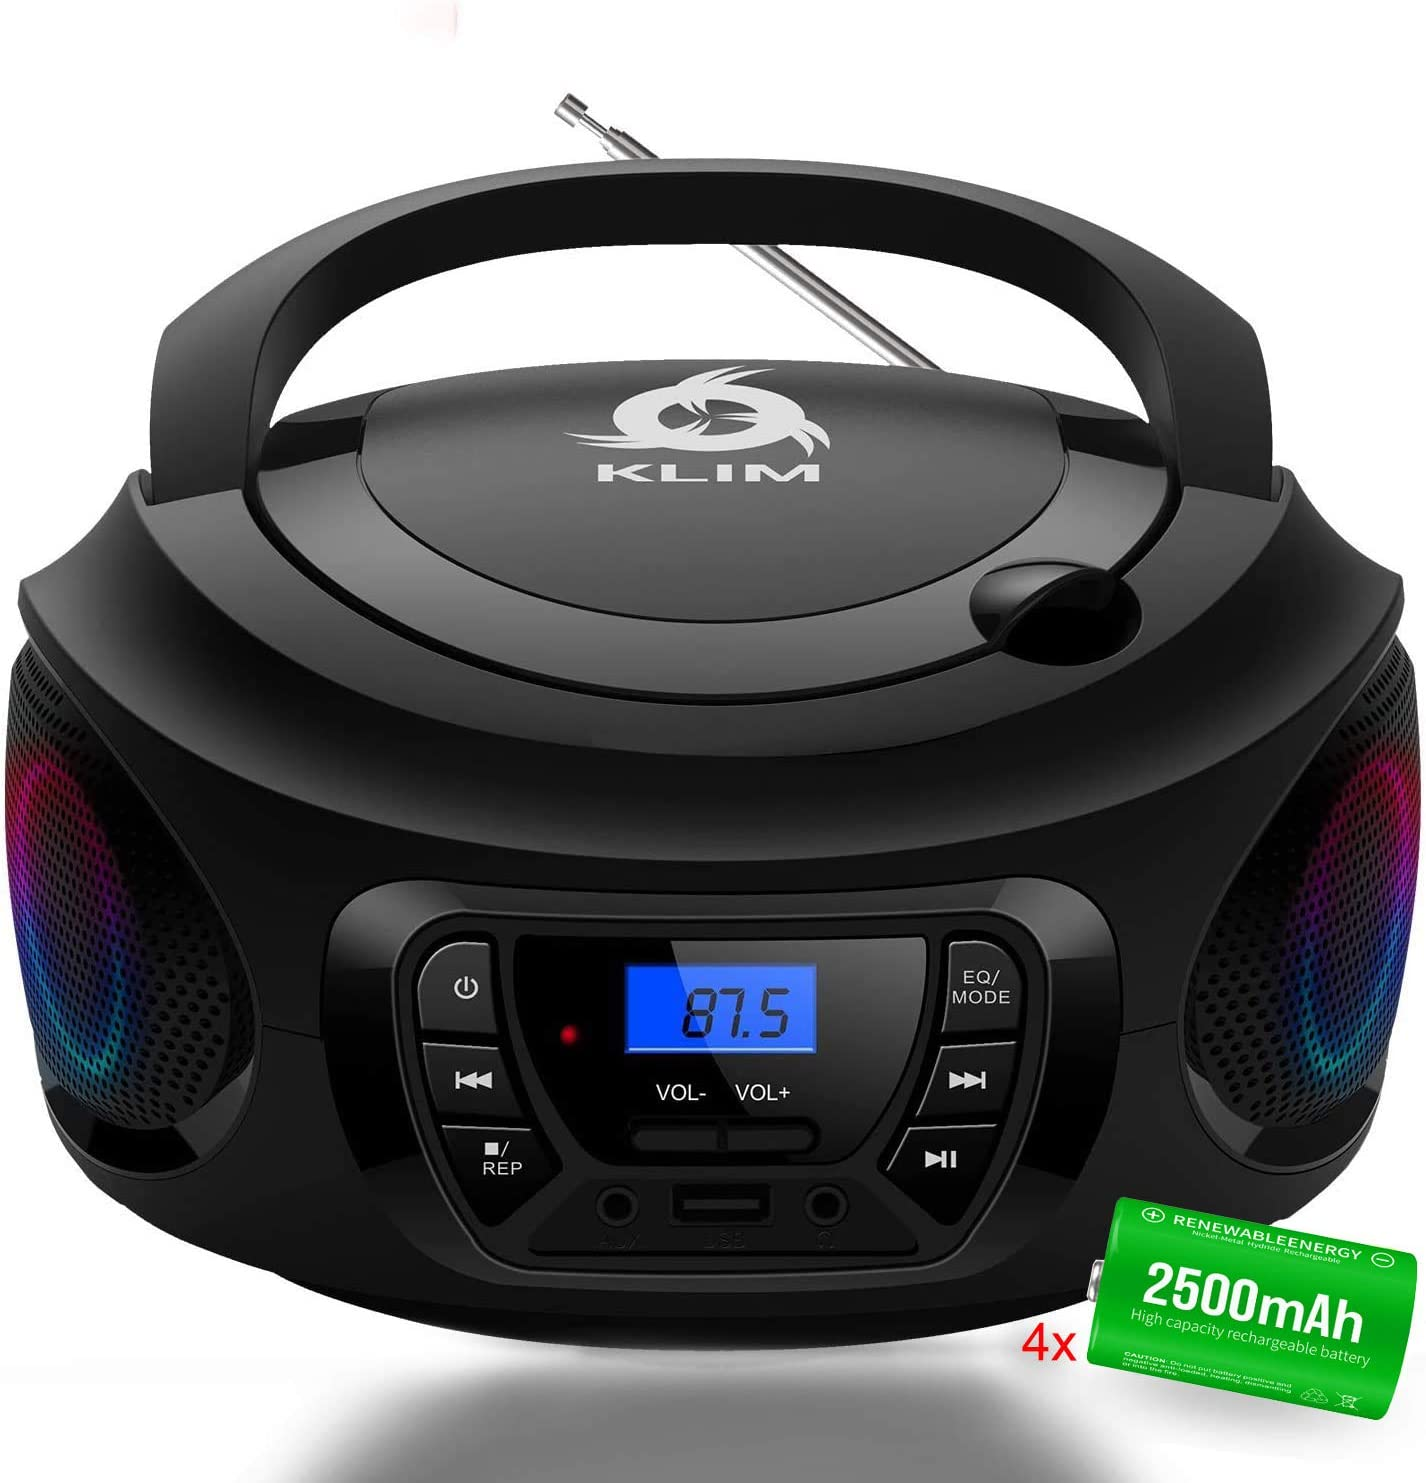 KLIM CD Boombox Portable Audio, FM Radio, Rechargeable Battery, Bluetooth, MP3 and AUX. Equipped with Neodymium Speakers, [2021 Release] Upgraded CD Laser Lens.